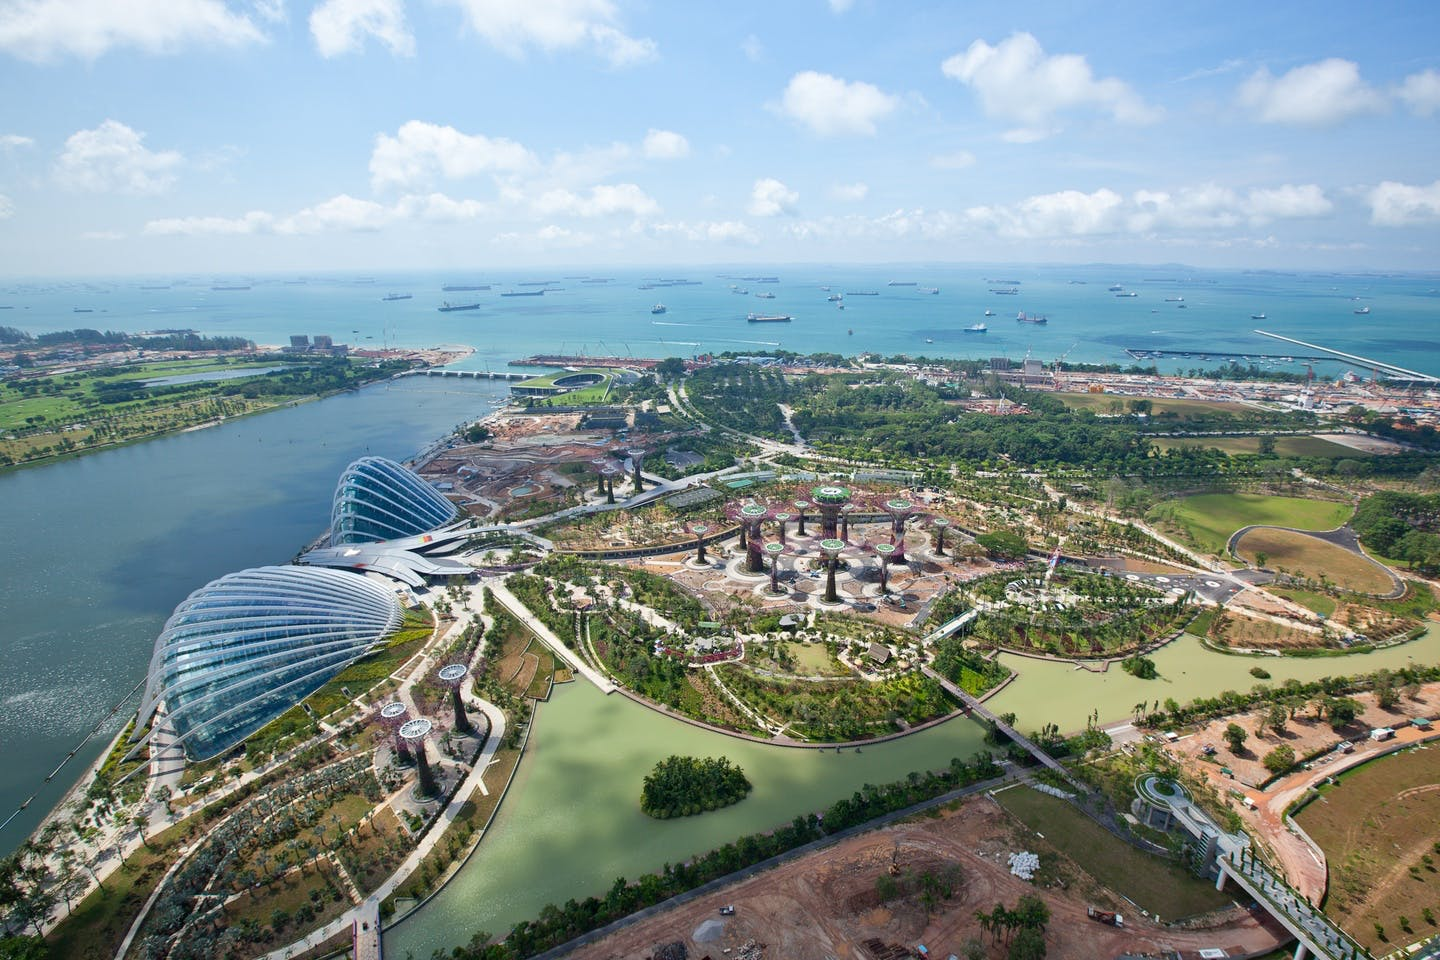 The billion-dollar Gardens by the Bay project is built on 101 hectares of land in Marina Bay, the heart of Singapore's Central Business District.